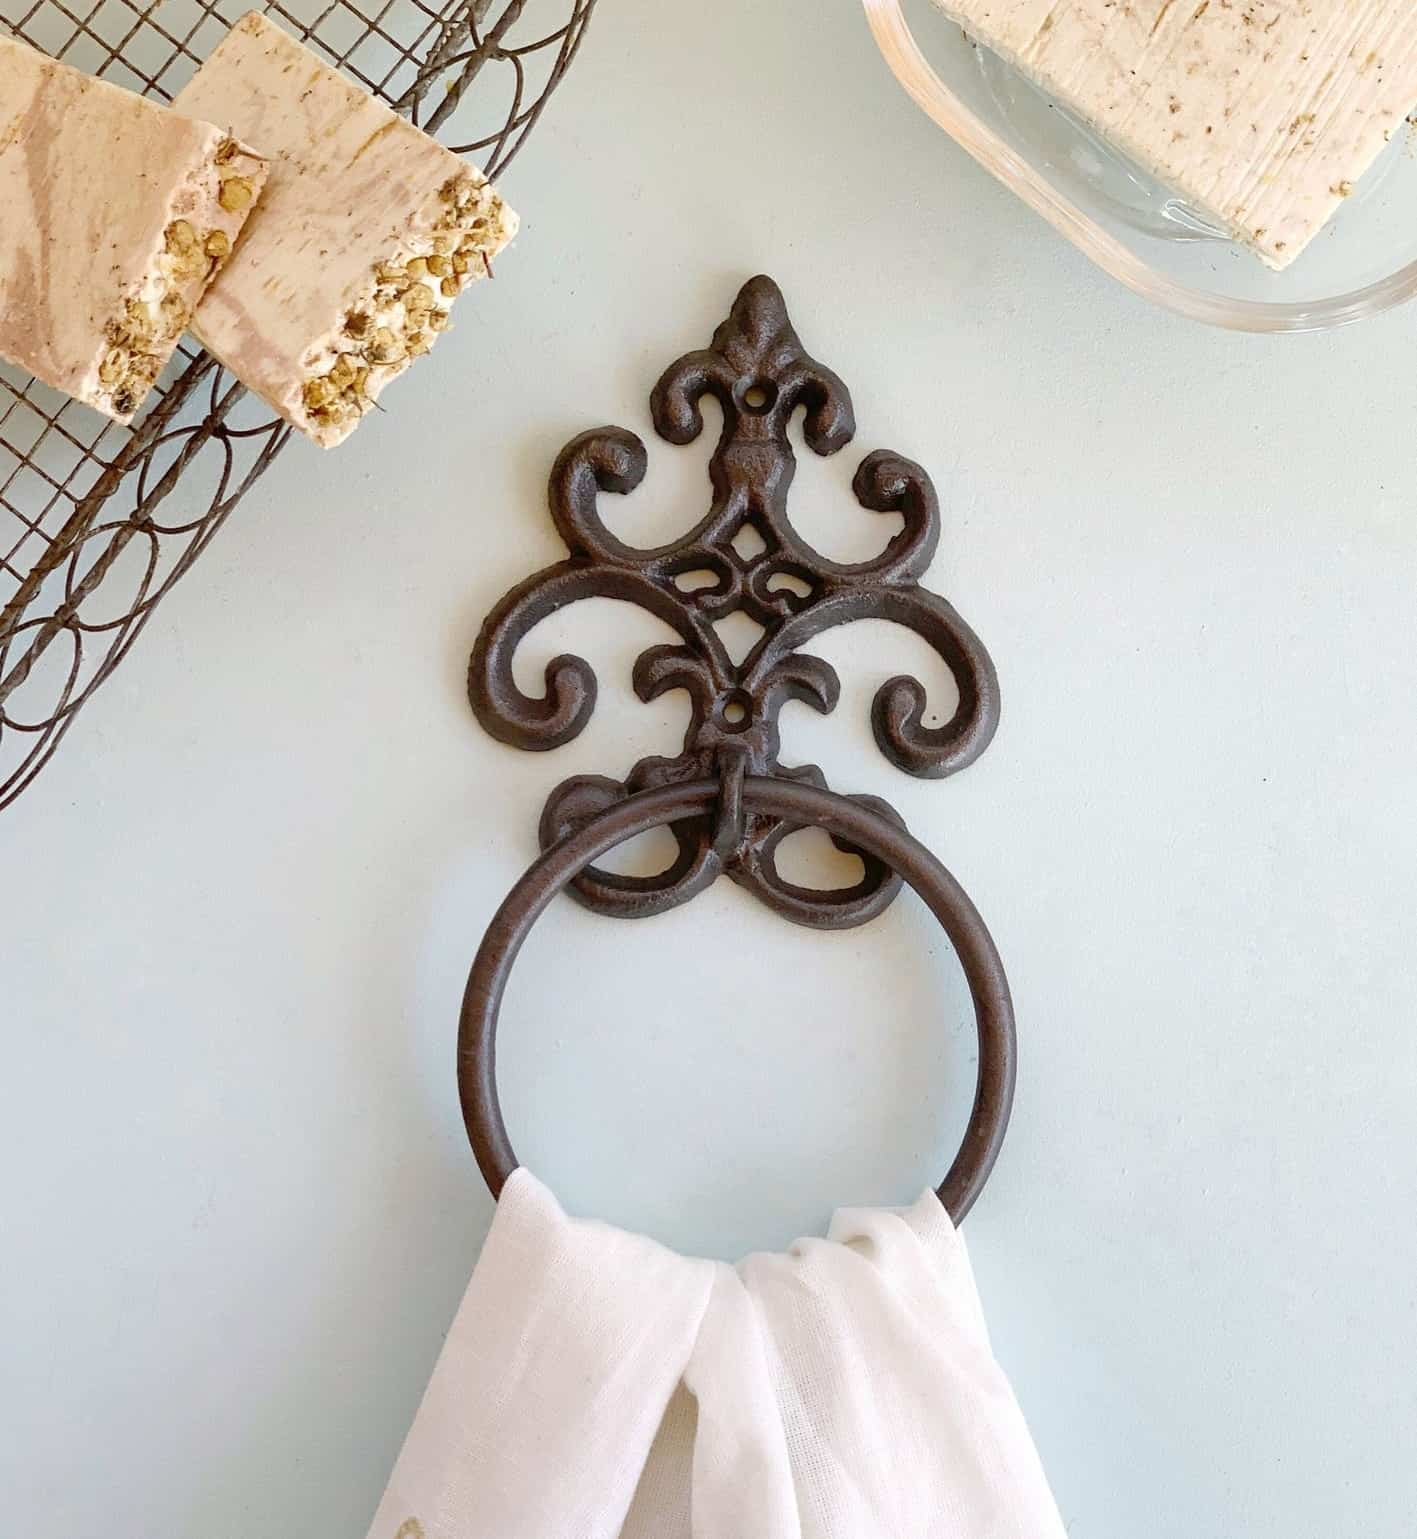 DIY Hand Towel Ring